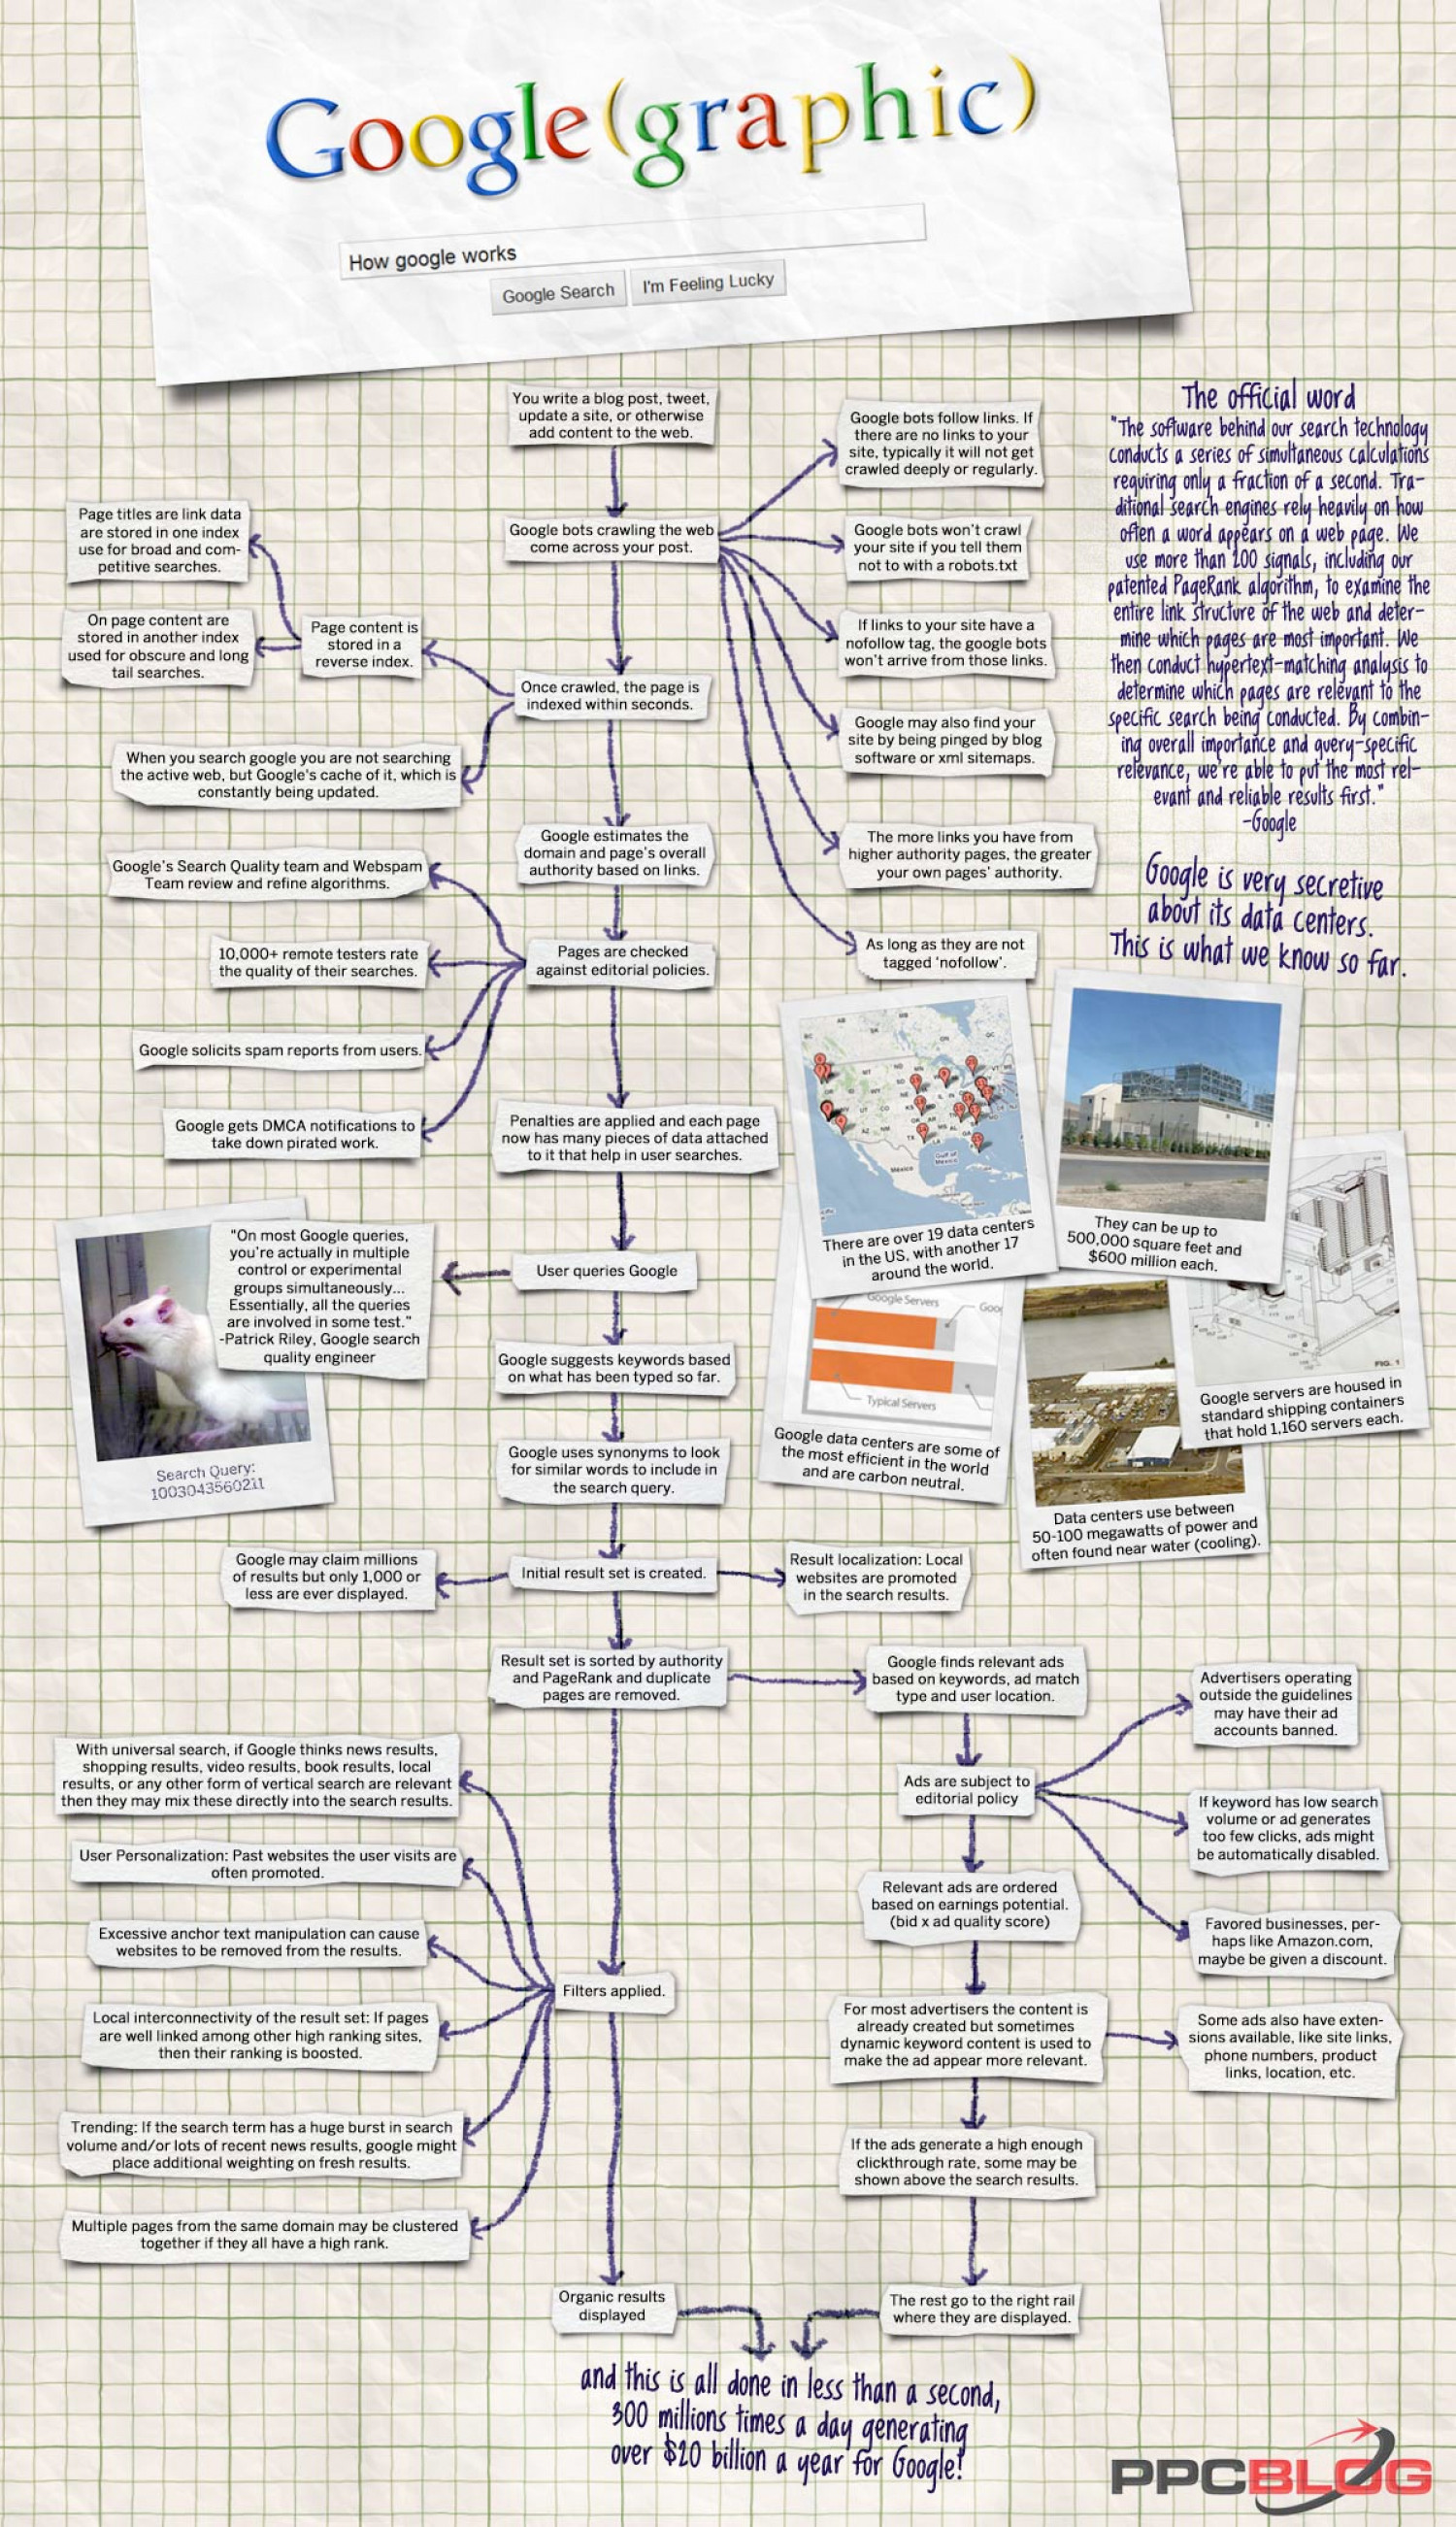 Google (graphic) How Google Works Infographic